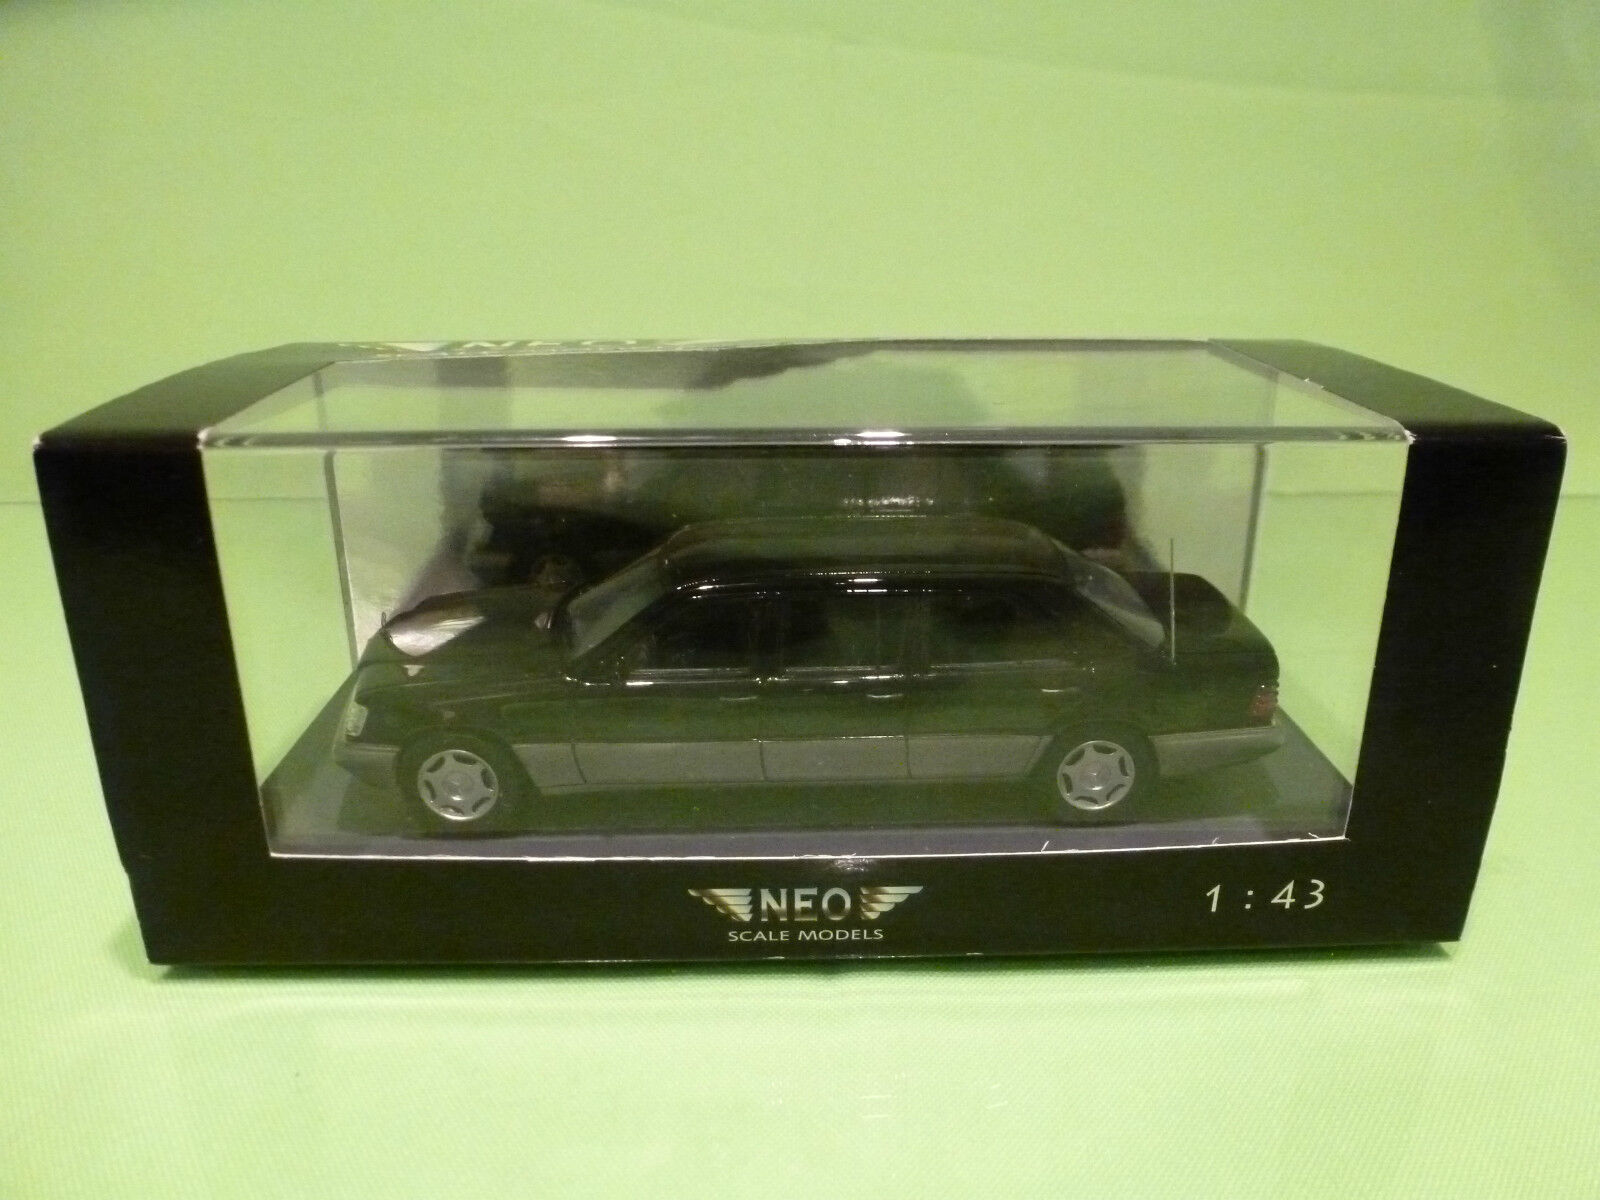 NEO SCALE MODELS 1 43 - MERCEDES V124 LANG  NO= 44245 - GOOD CONDITION IN BOX